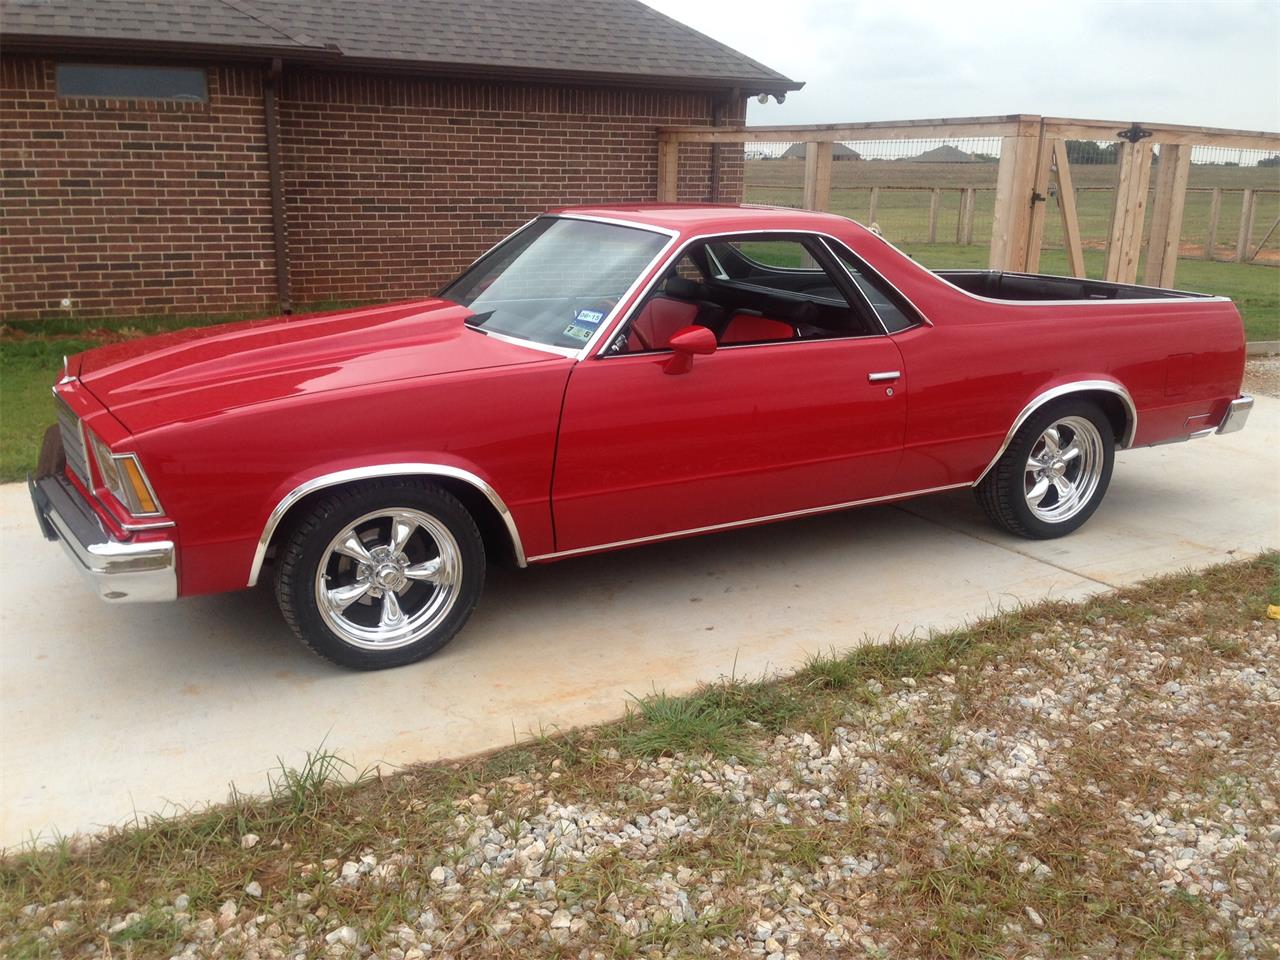 Large Picture of 1979 El Camino Offered by a Private Seller - PZT5